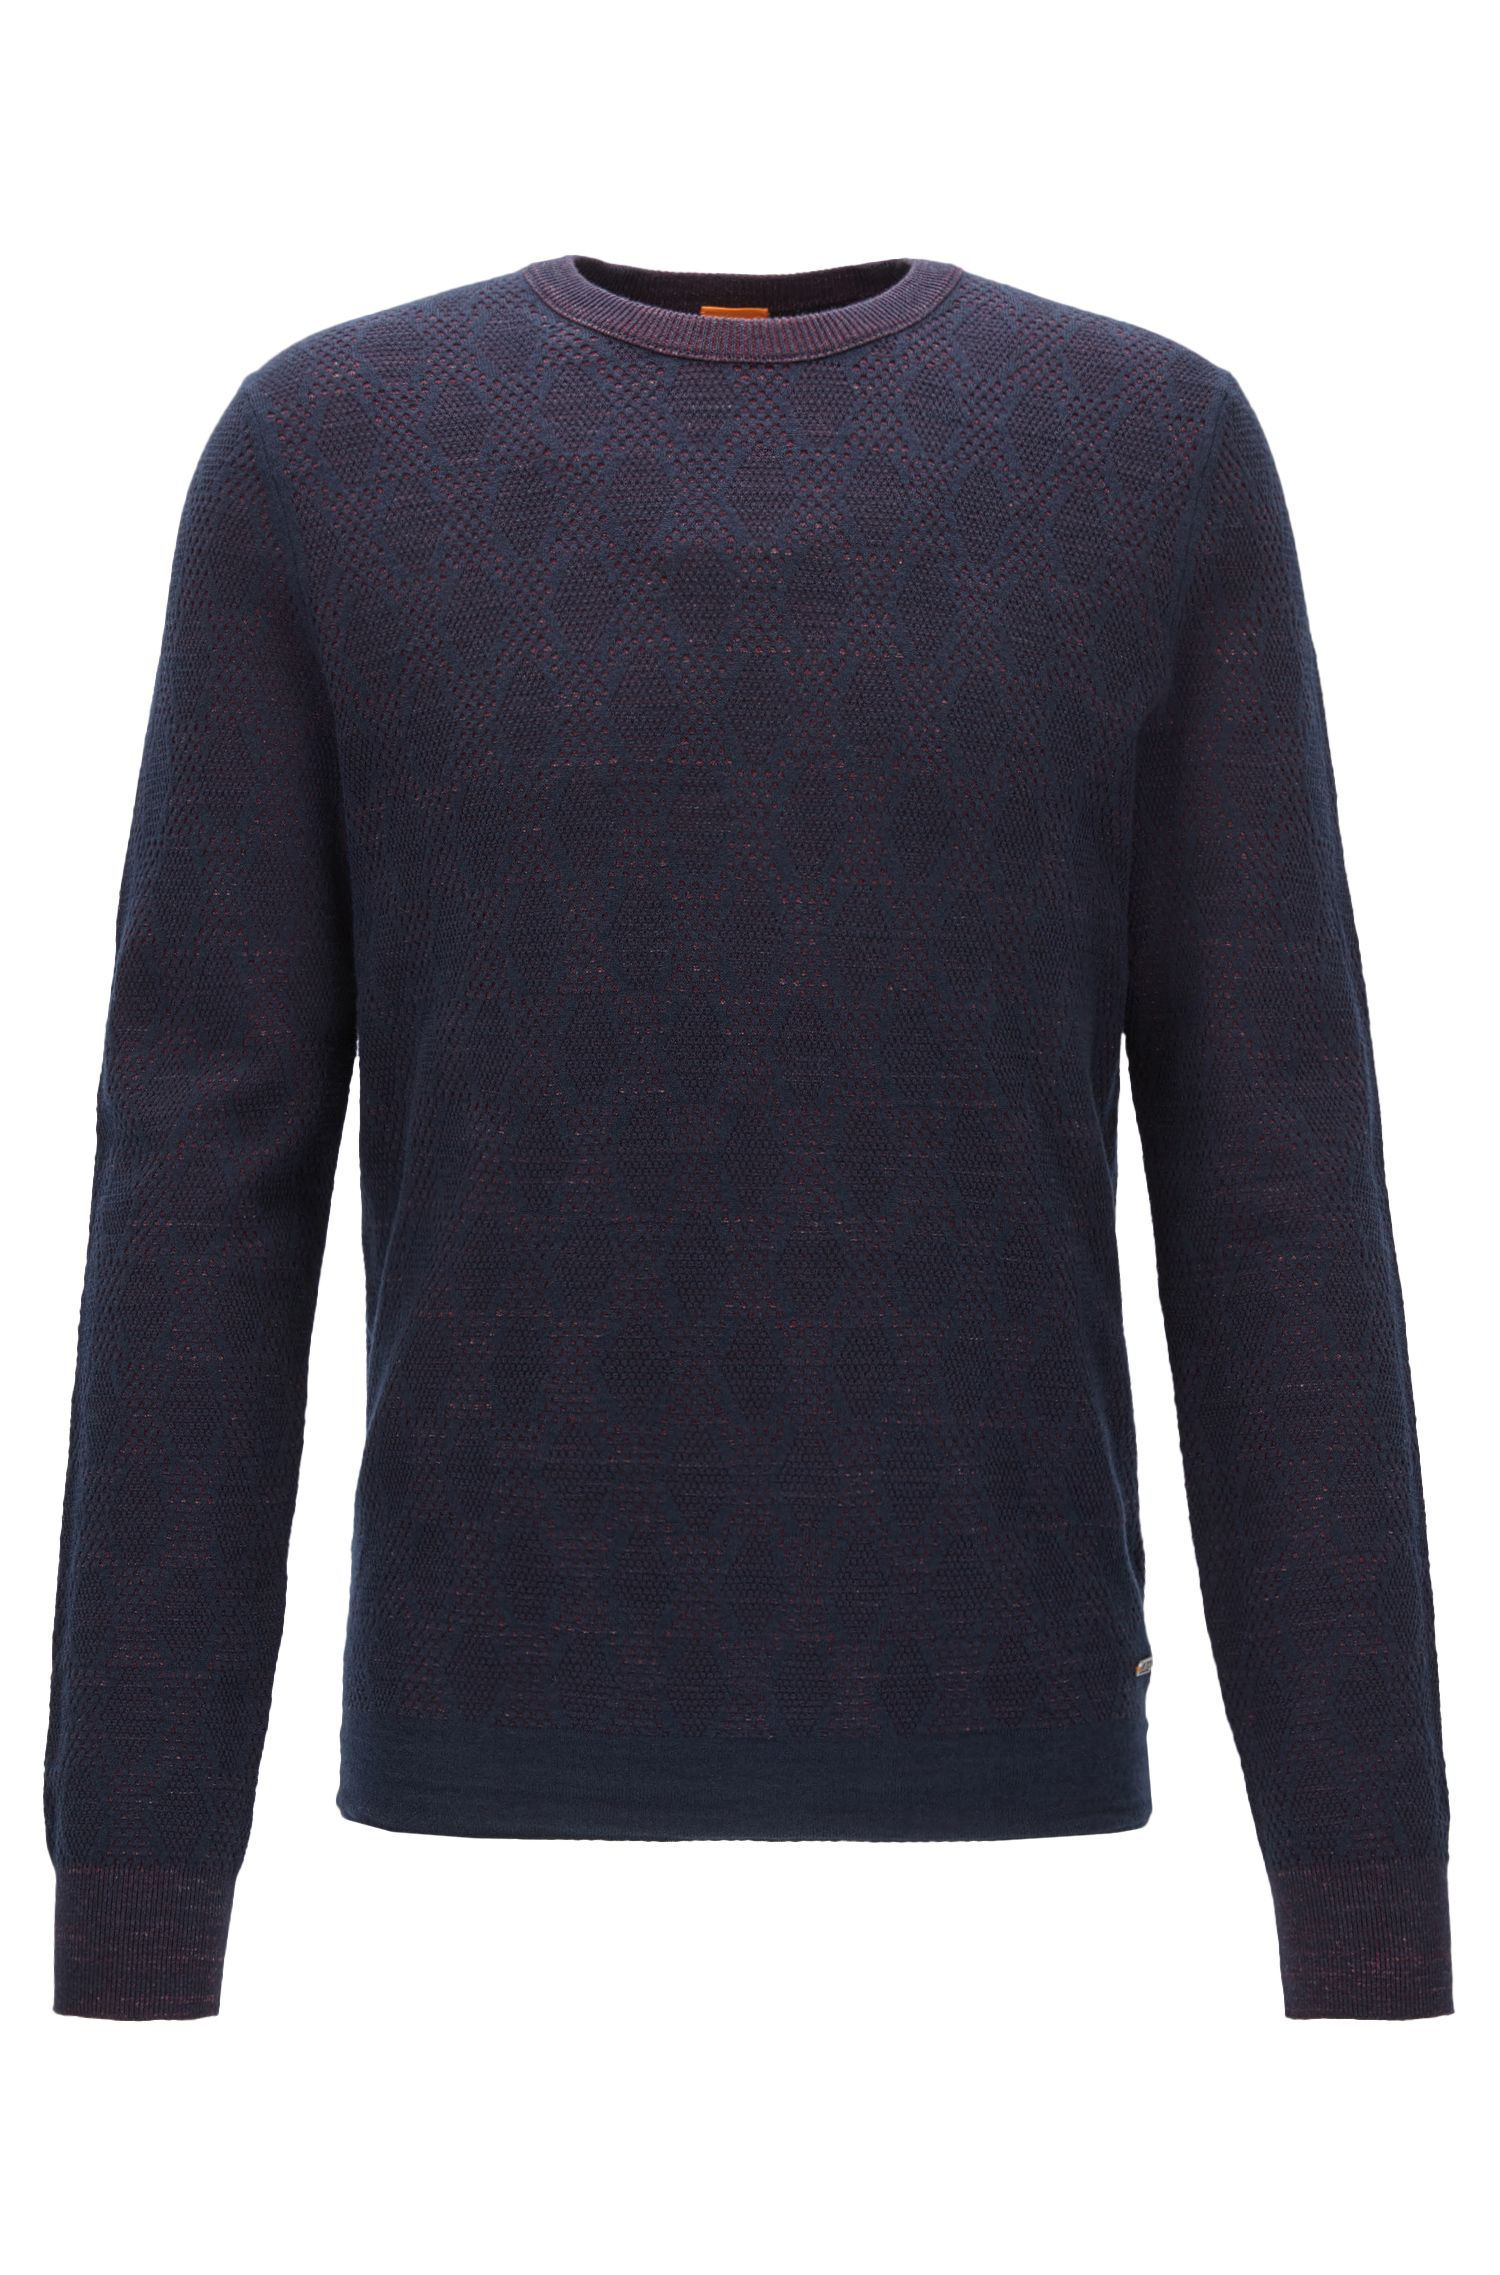 Two-tone structured sweater in a cotton blend